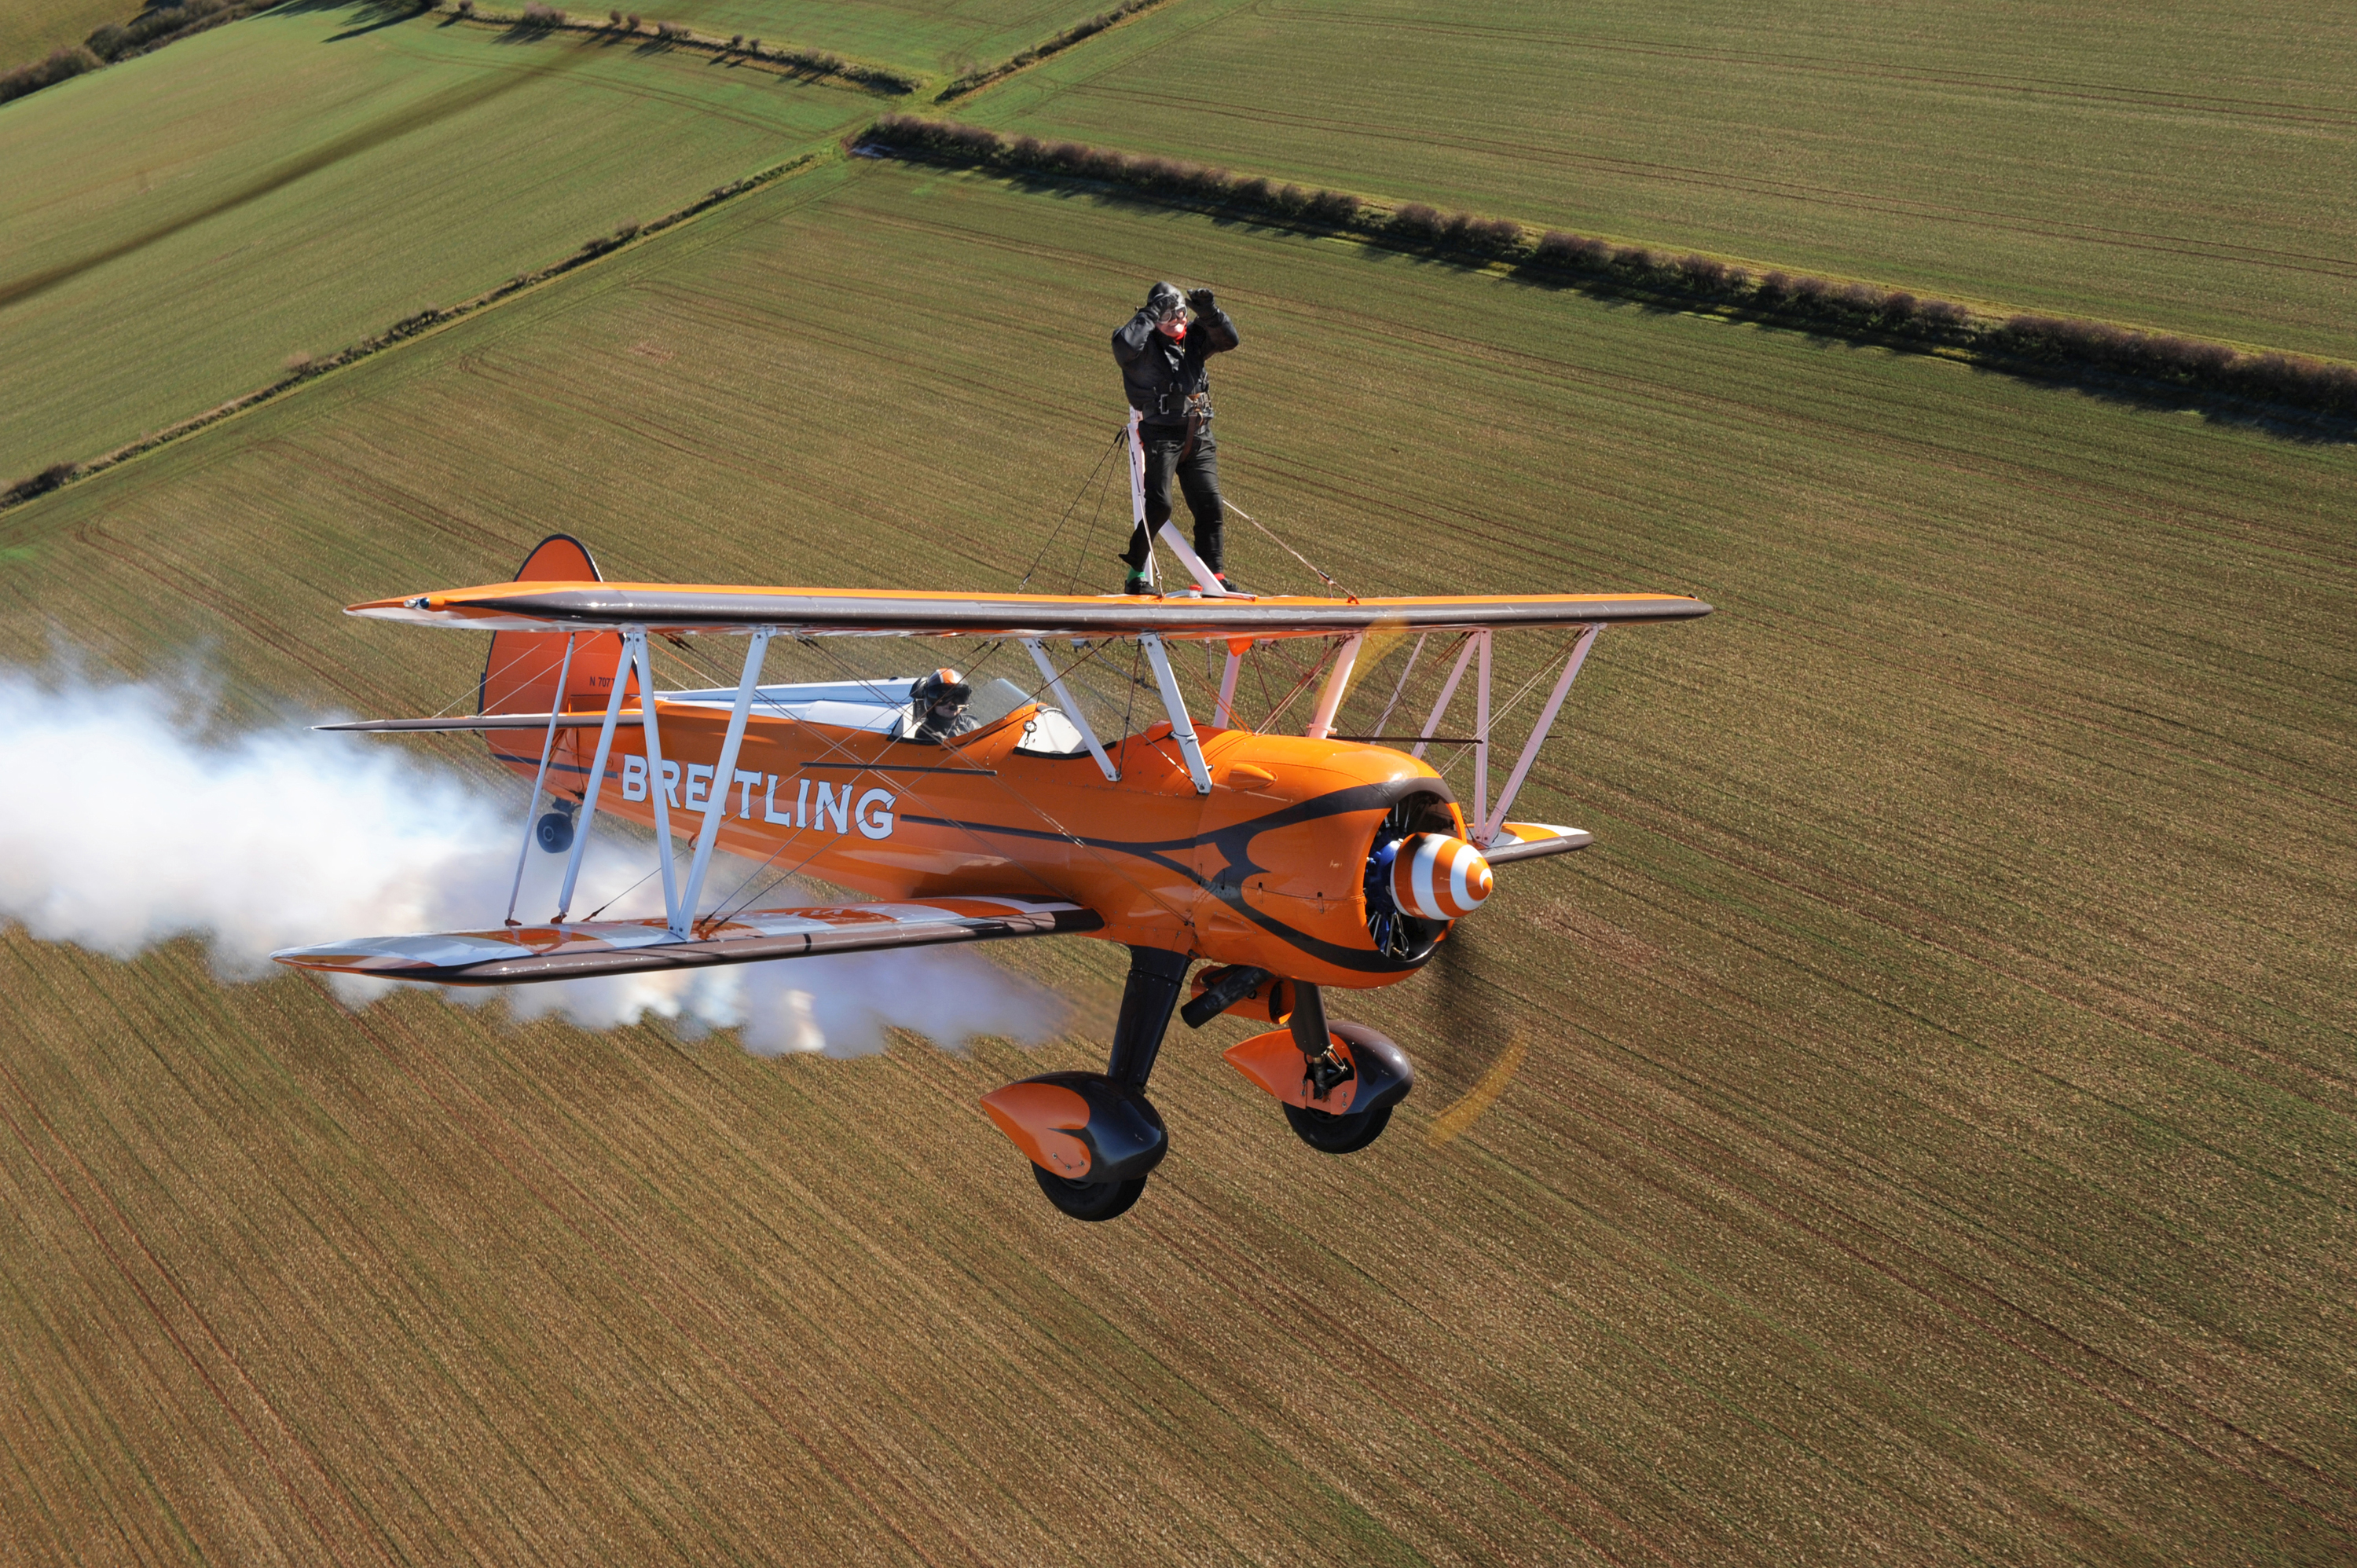 The oldest wing walker is Thomas Lackey who completed a wing walk at the age of 90 years and 5 months.